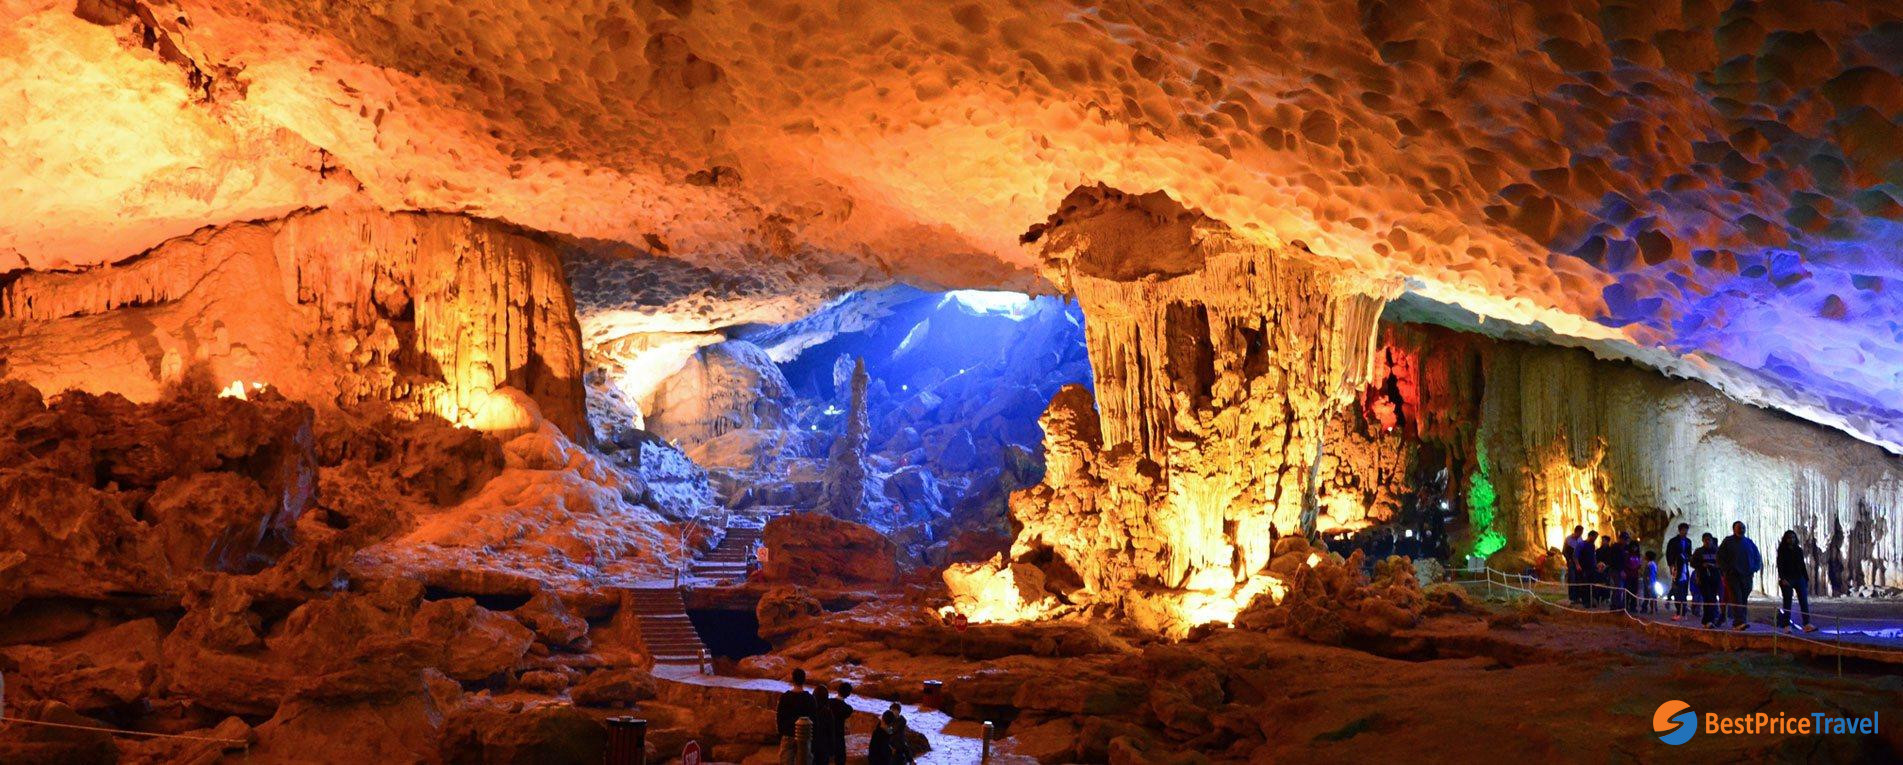 Sung Sot Cave - typical destination for 2d1n tour in Halong Bay